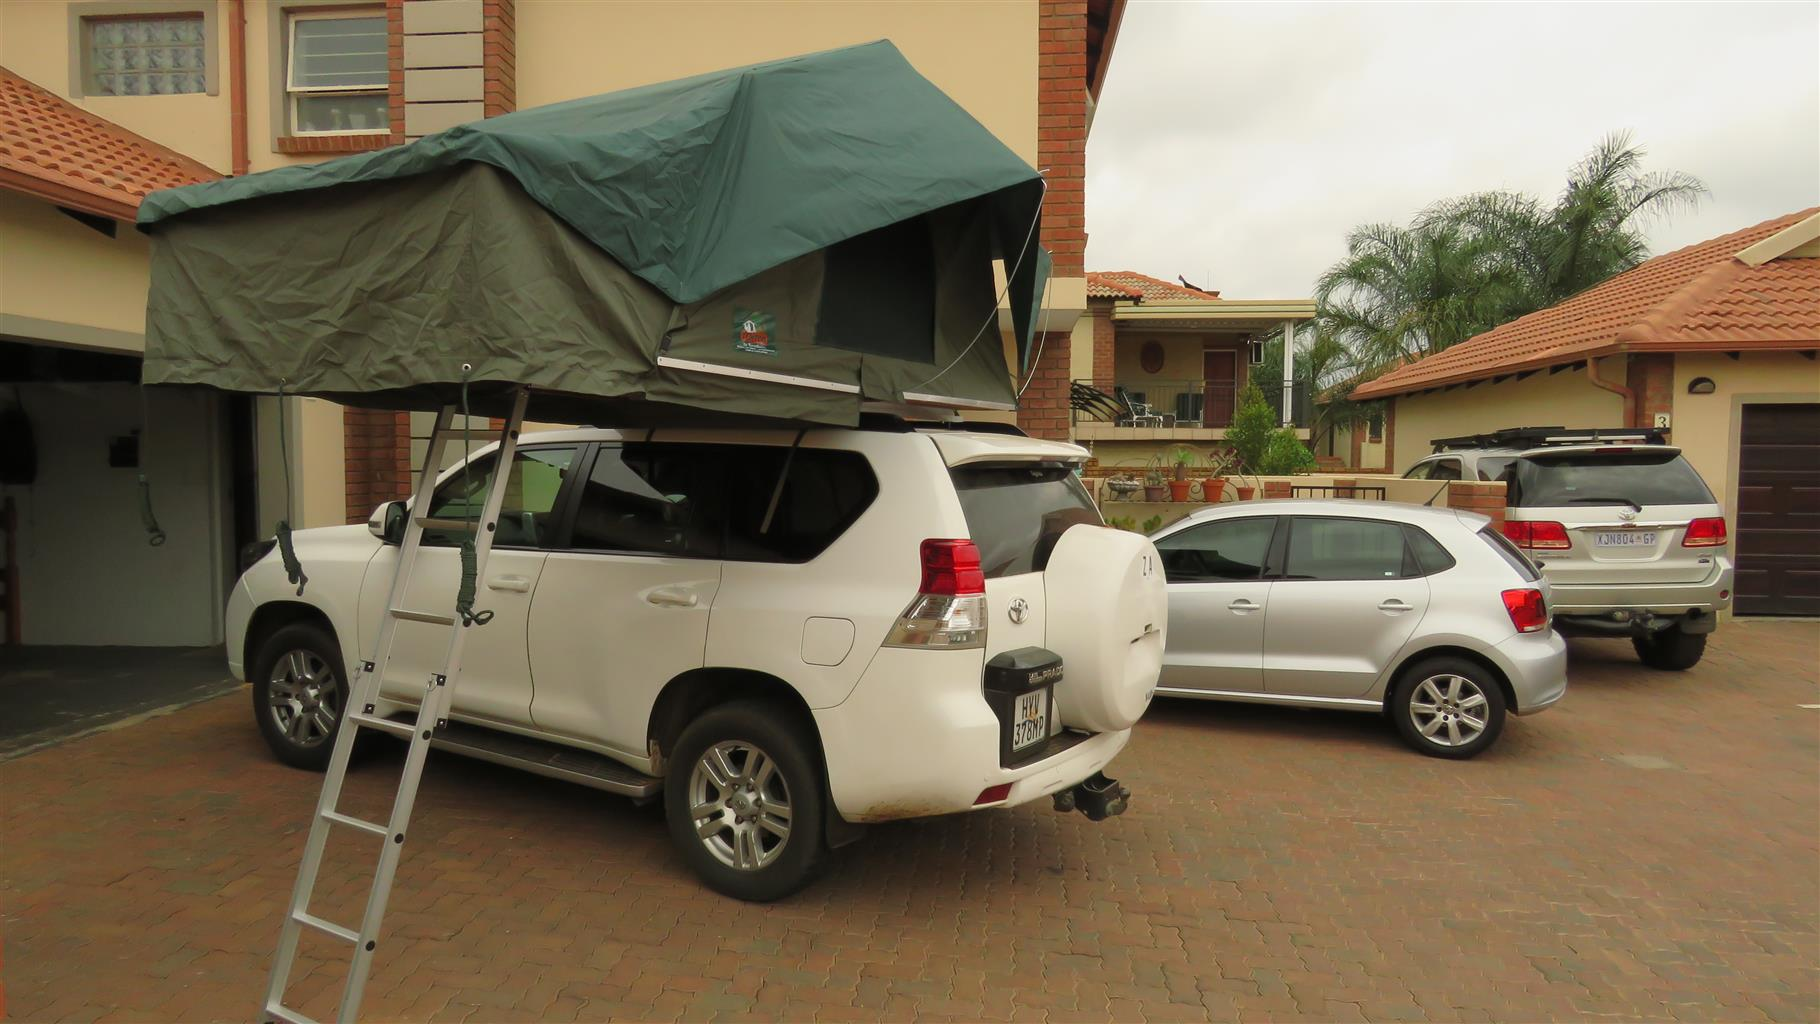 1.4 Pro Rooftop Tent Tentco Brand-new